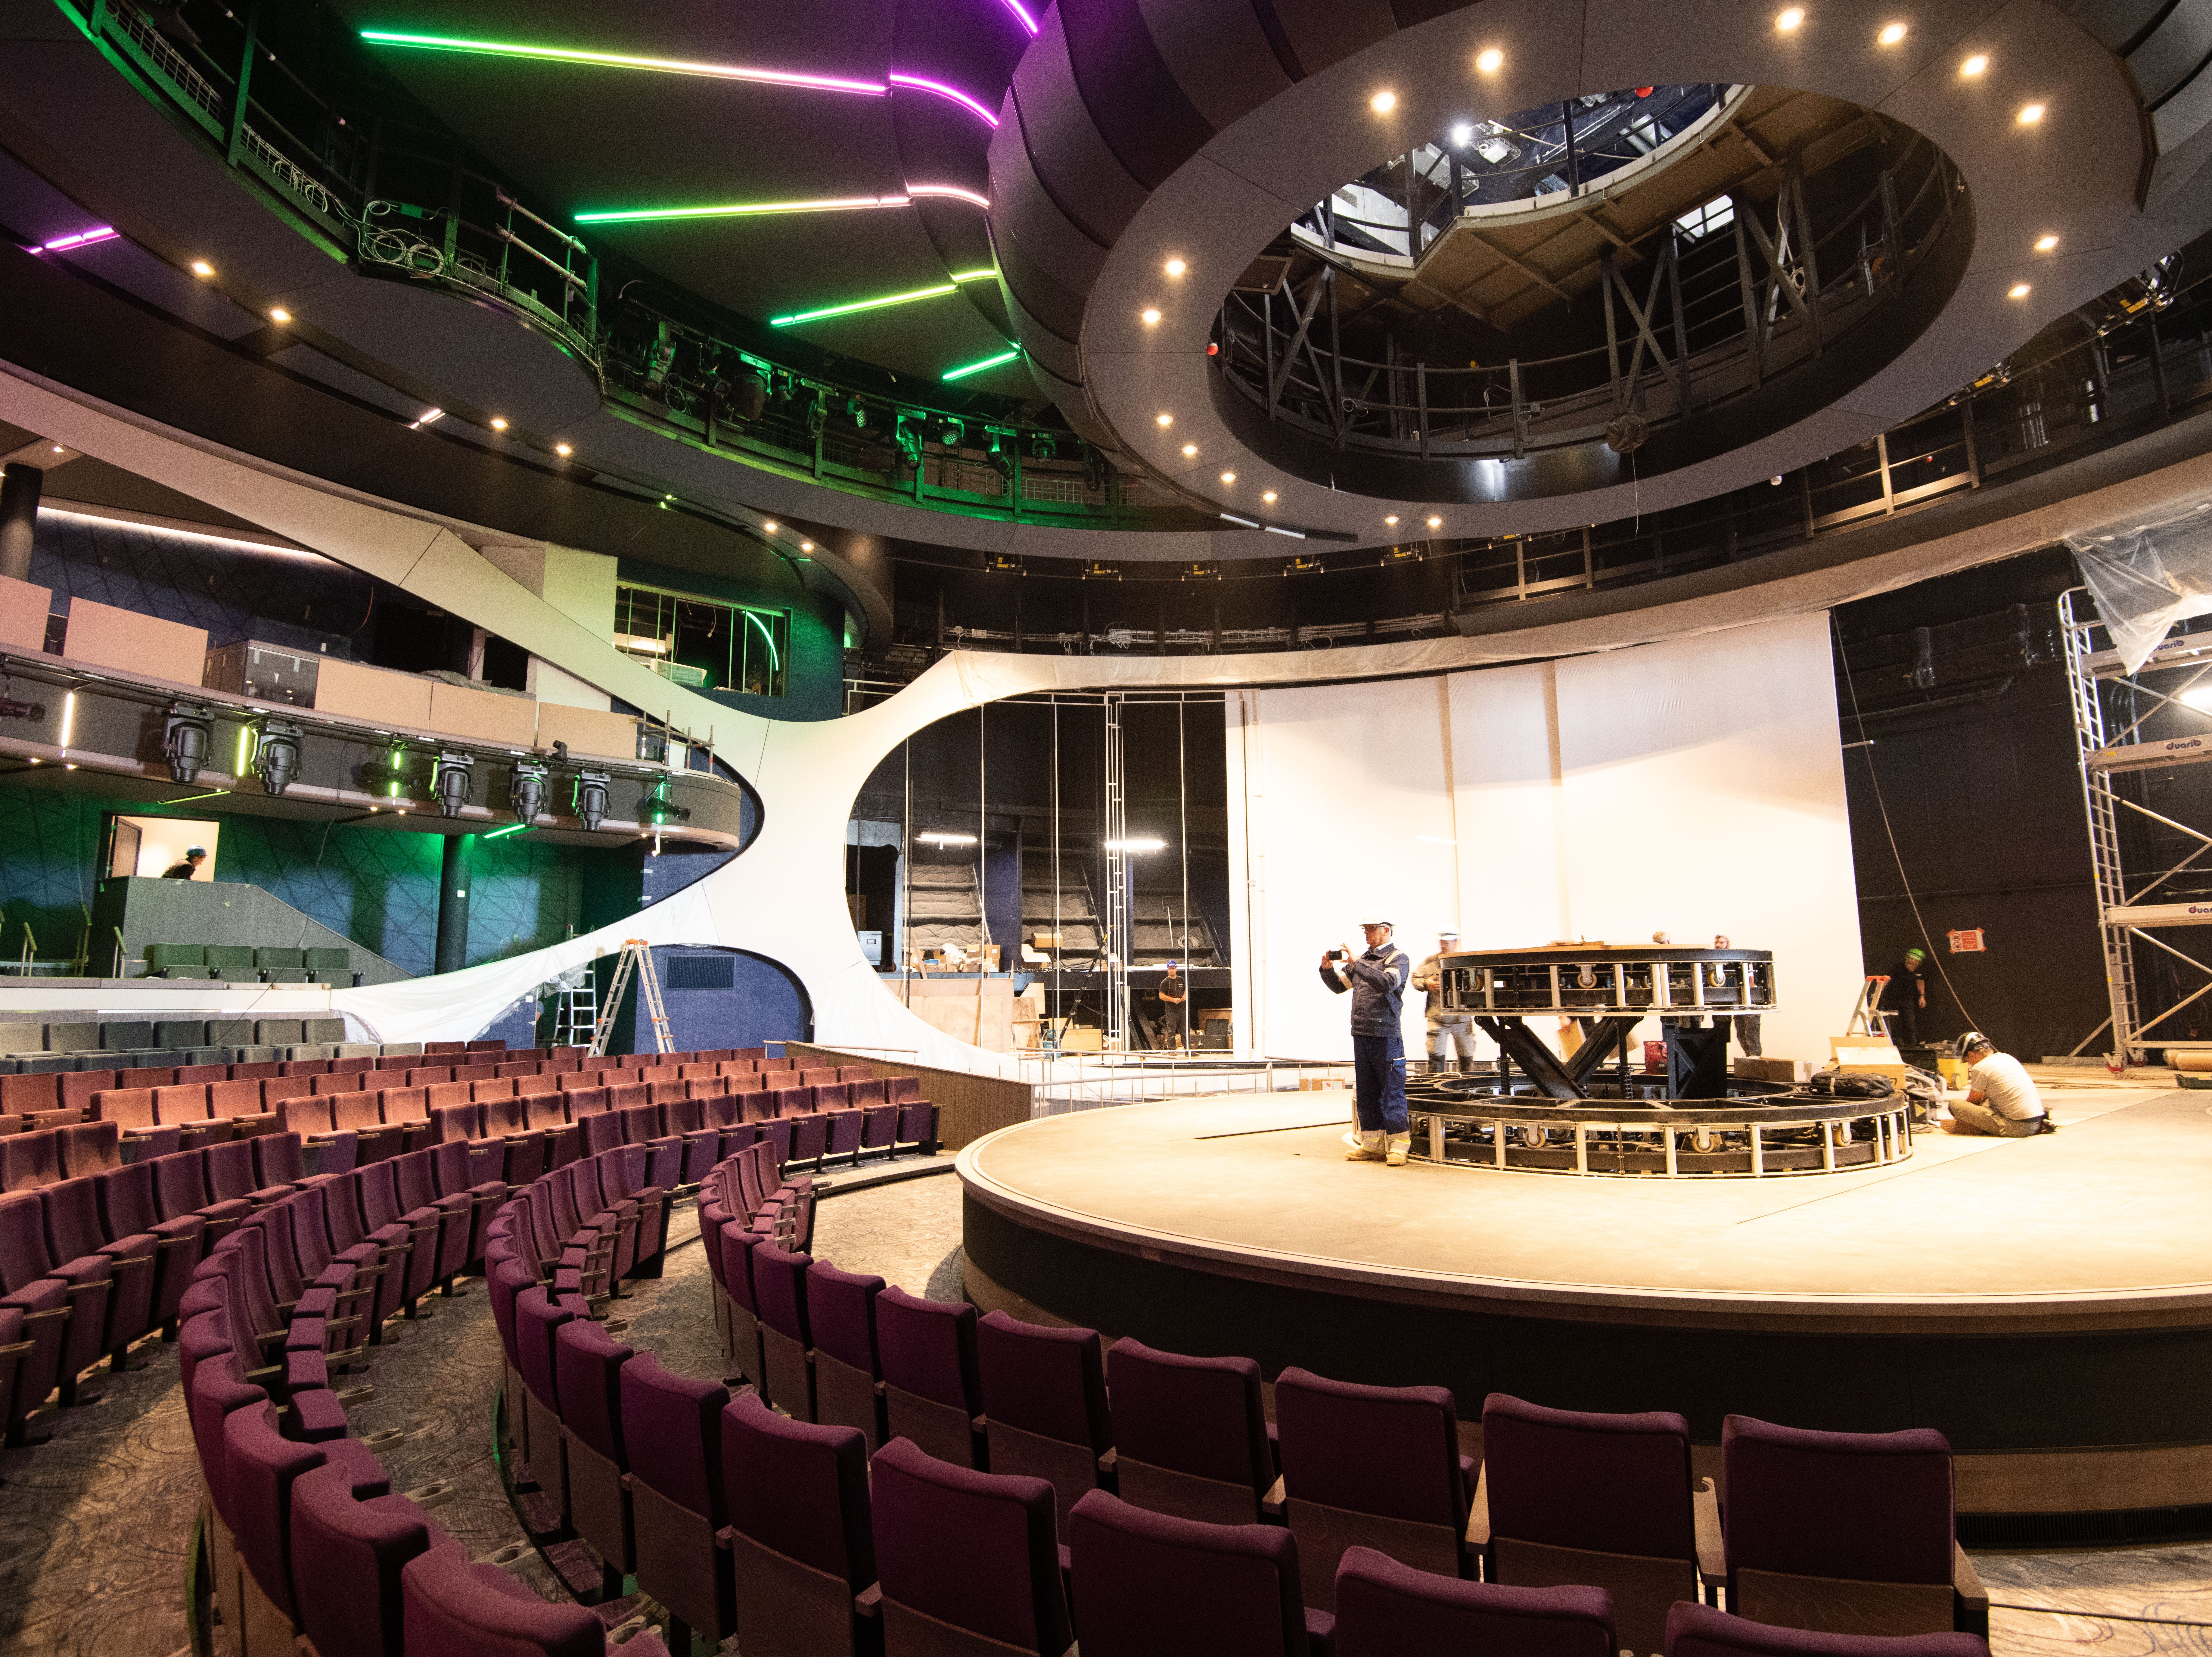 Celebrity Edge has a main theater that is being billed as the most technologically advanced theater ever on a Celebrity Cruises ship. It features two rotating spiral staircases, 10 synchronized panoramic projection screens, 16 state-of-the-art video mapping laser projectors and aerial performance rigging.